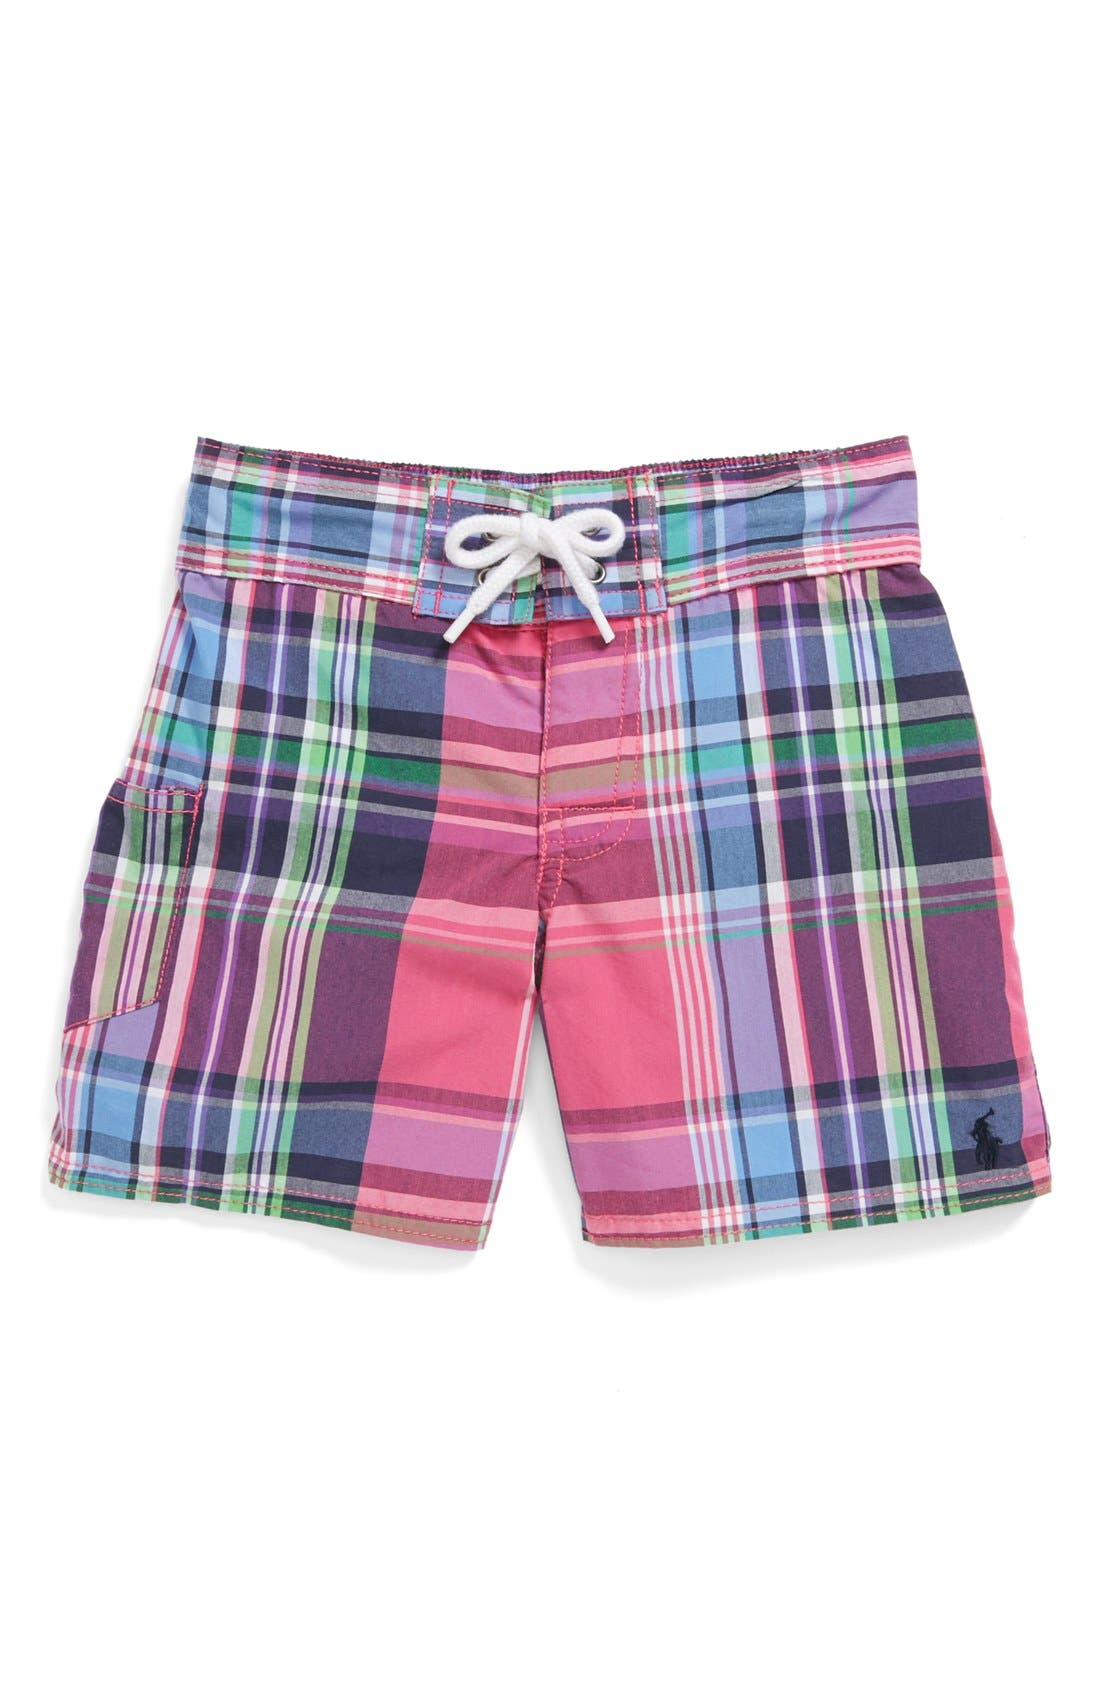 Main Image - Ralph Lauren Plaid Swim Trunks (Toddler Boys)